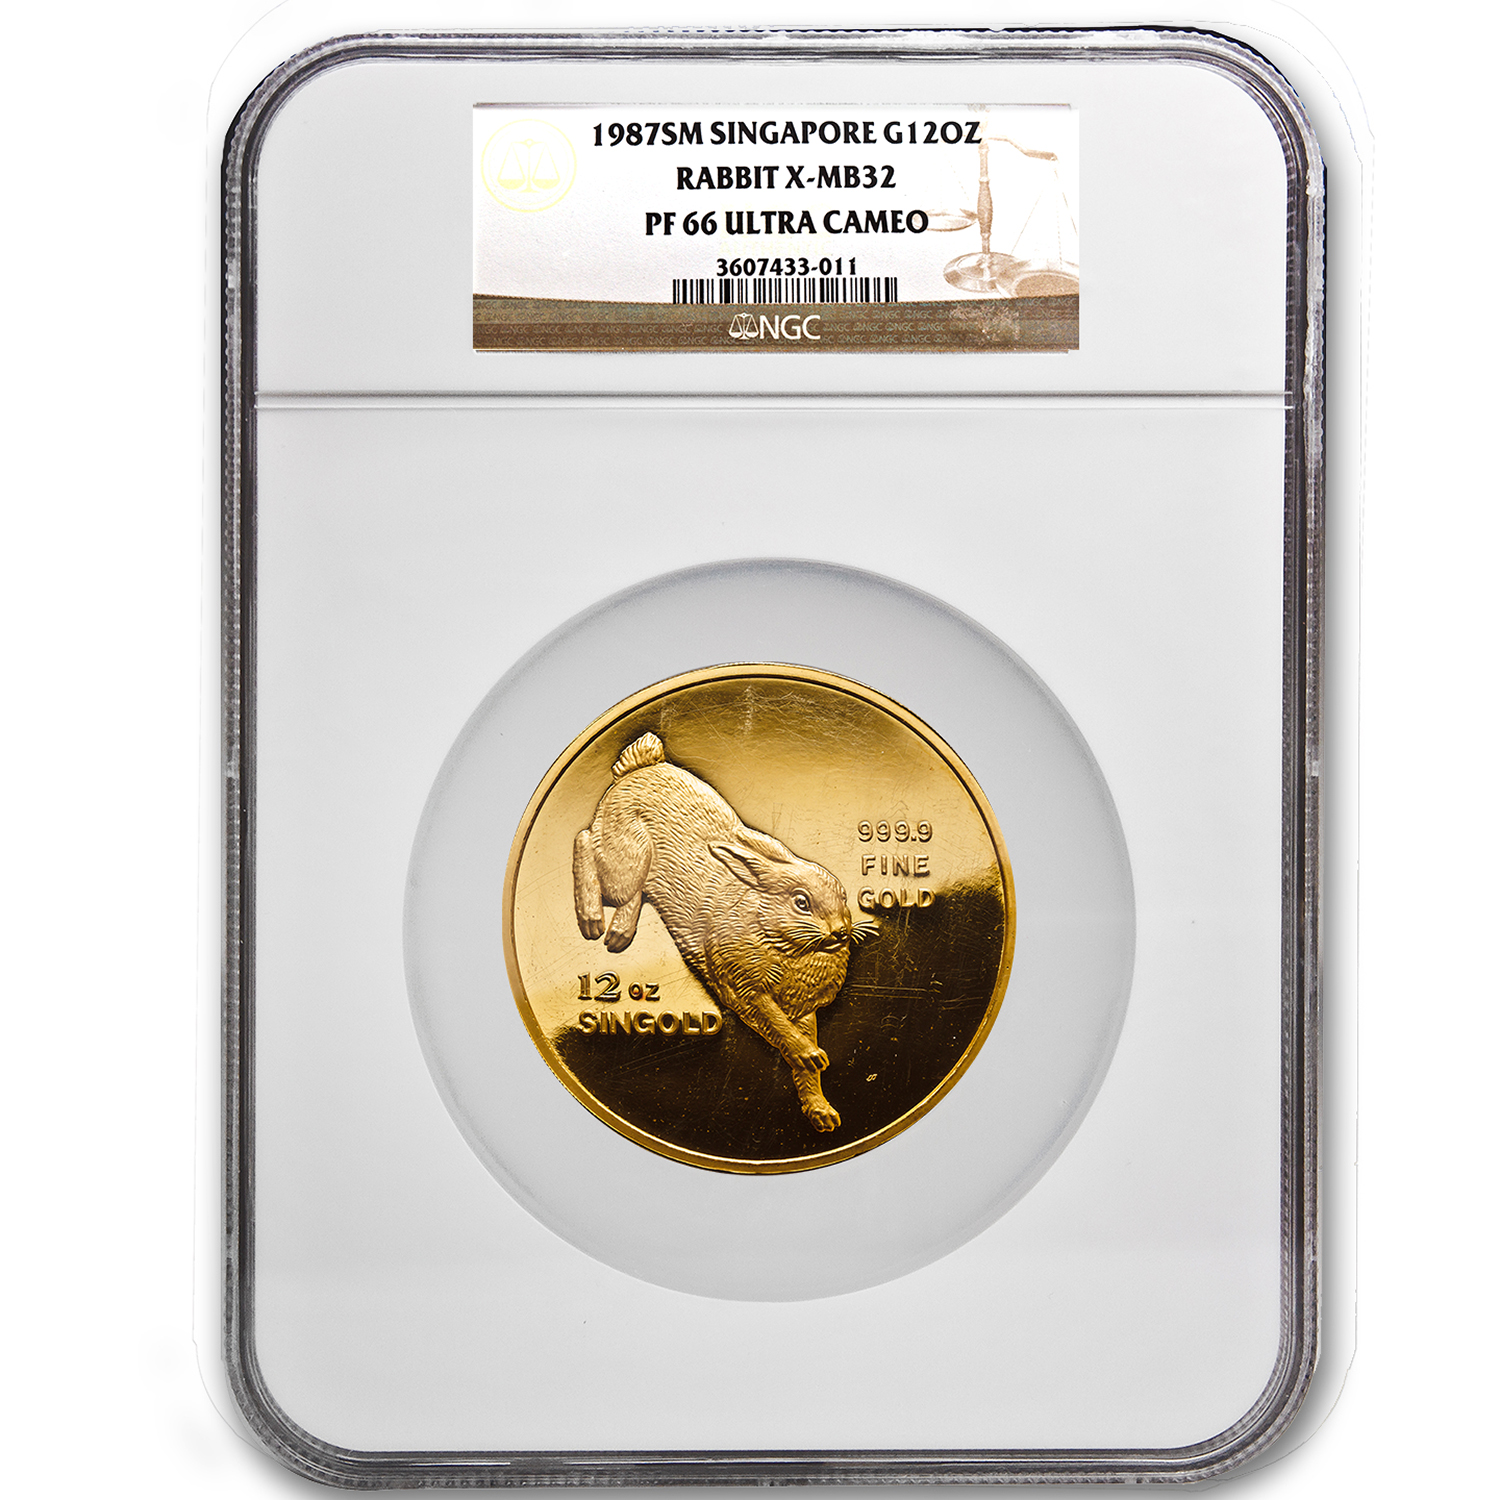 1987 Singapore 12 oz Proof Gold Singold Rabbit PF-66 NGC